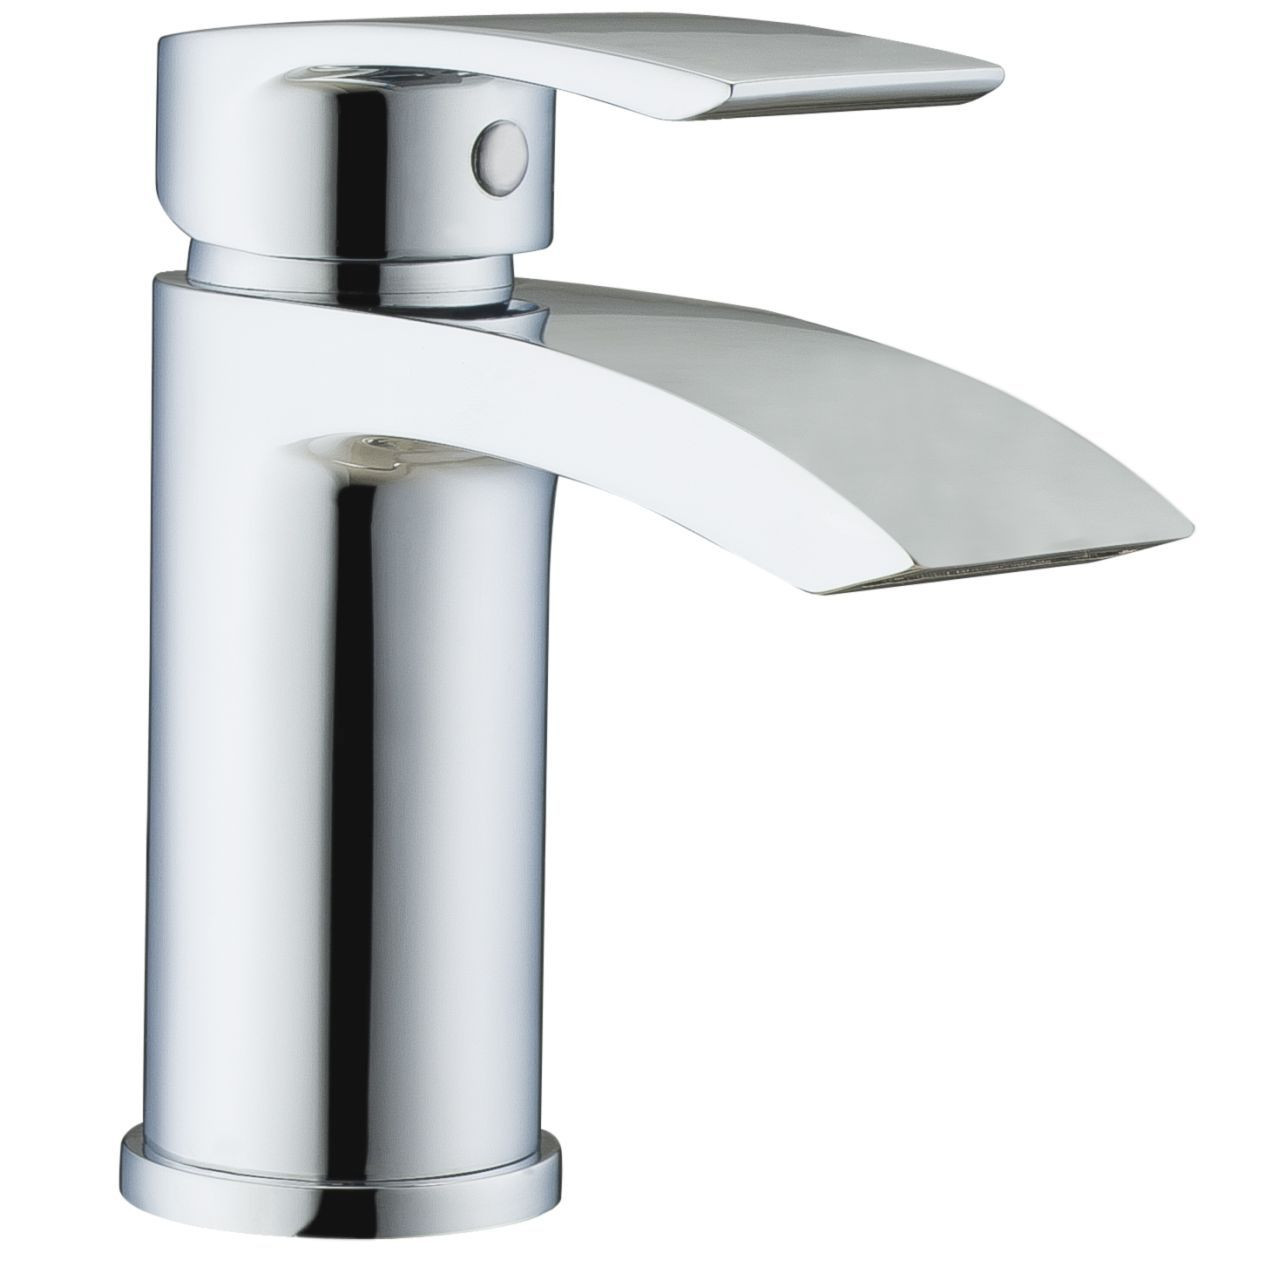 RAK Curve Mini Mono Basin Mixer Tap with Clicker Waste - RAKCRV3002